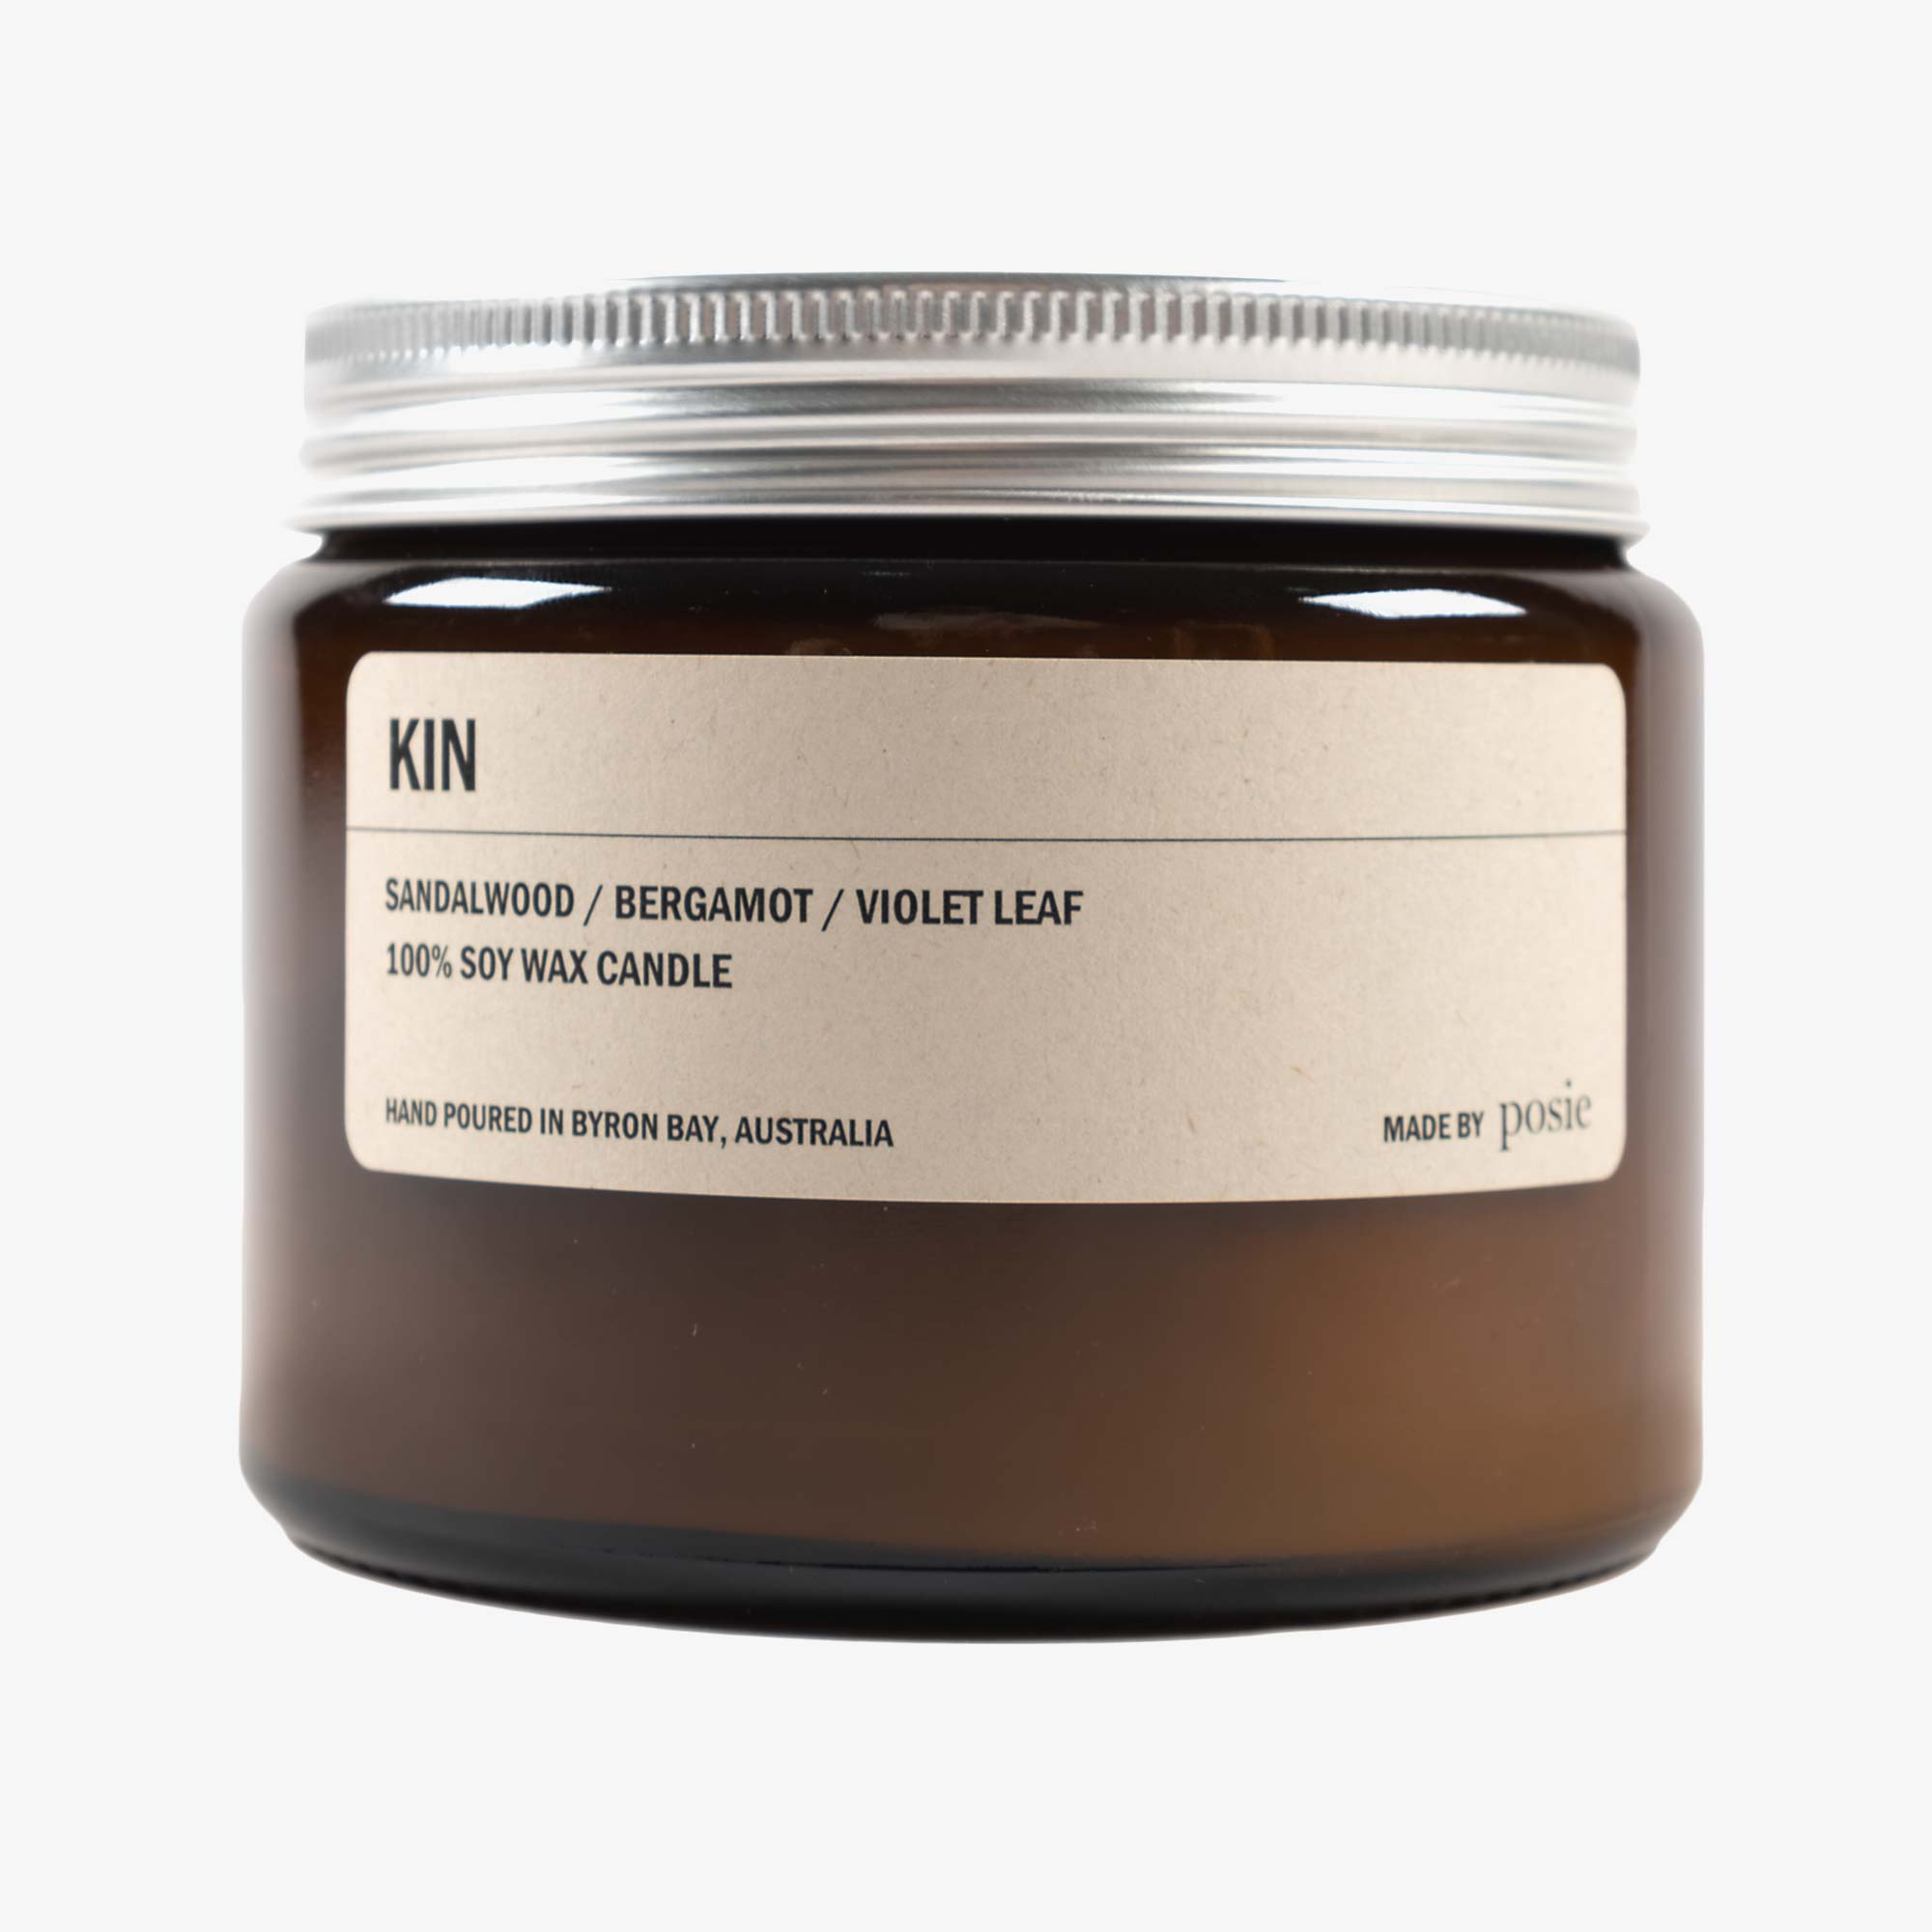 Posie Kin 500g Candle - Amber 1